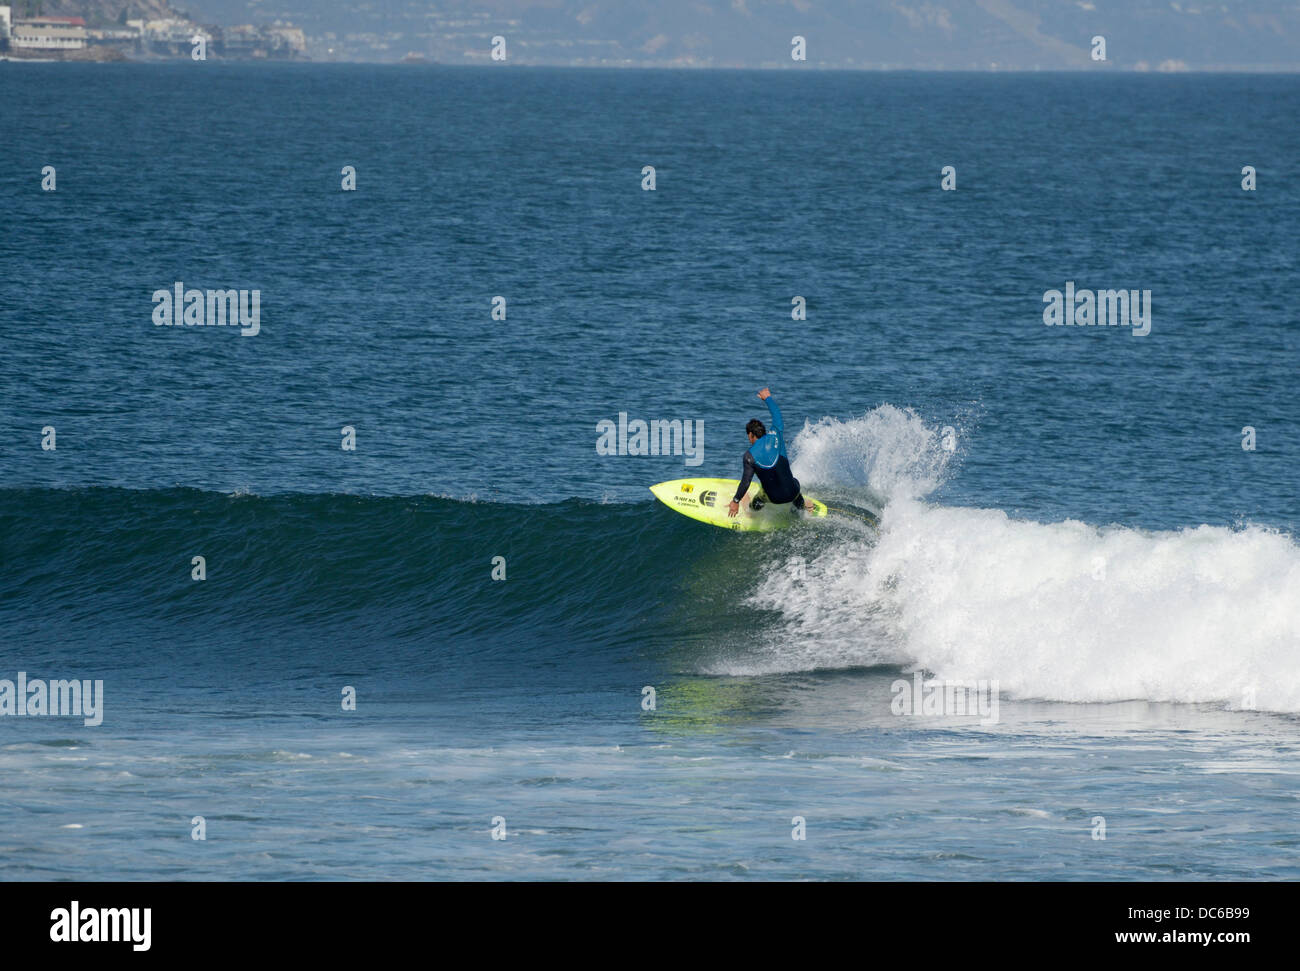 Lone surfer riding a wave, Surfrider Beach, Malibu, CA - Stock Image